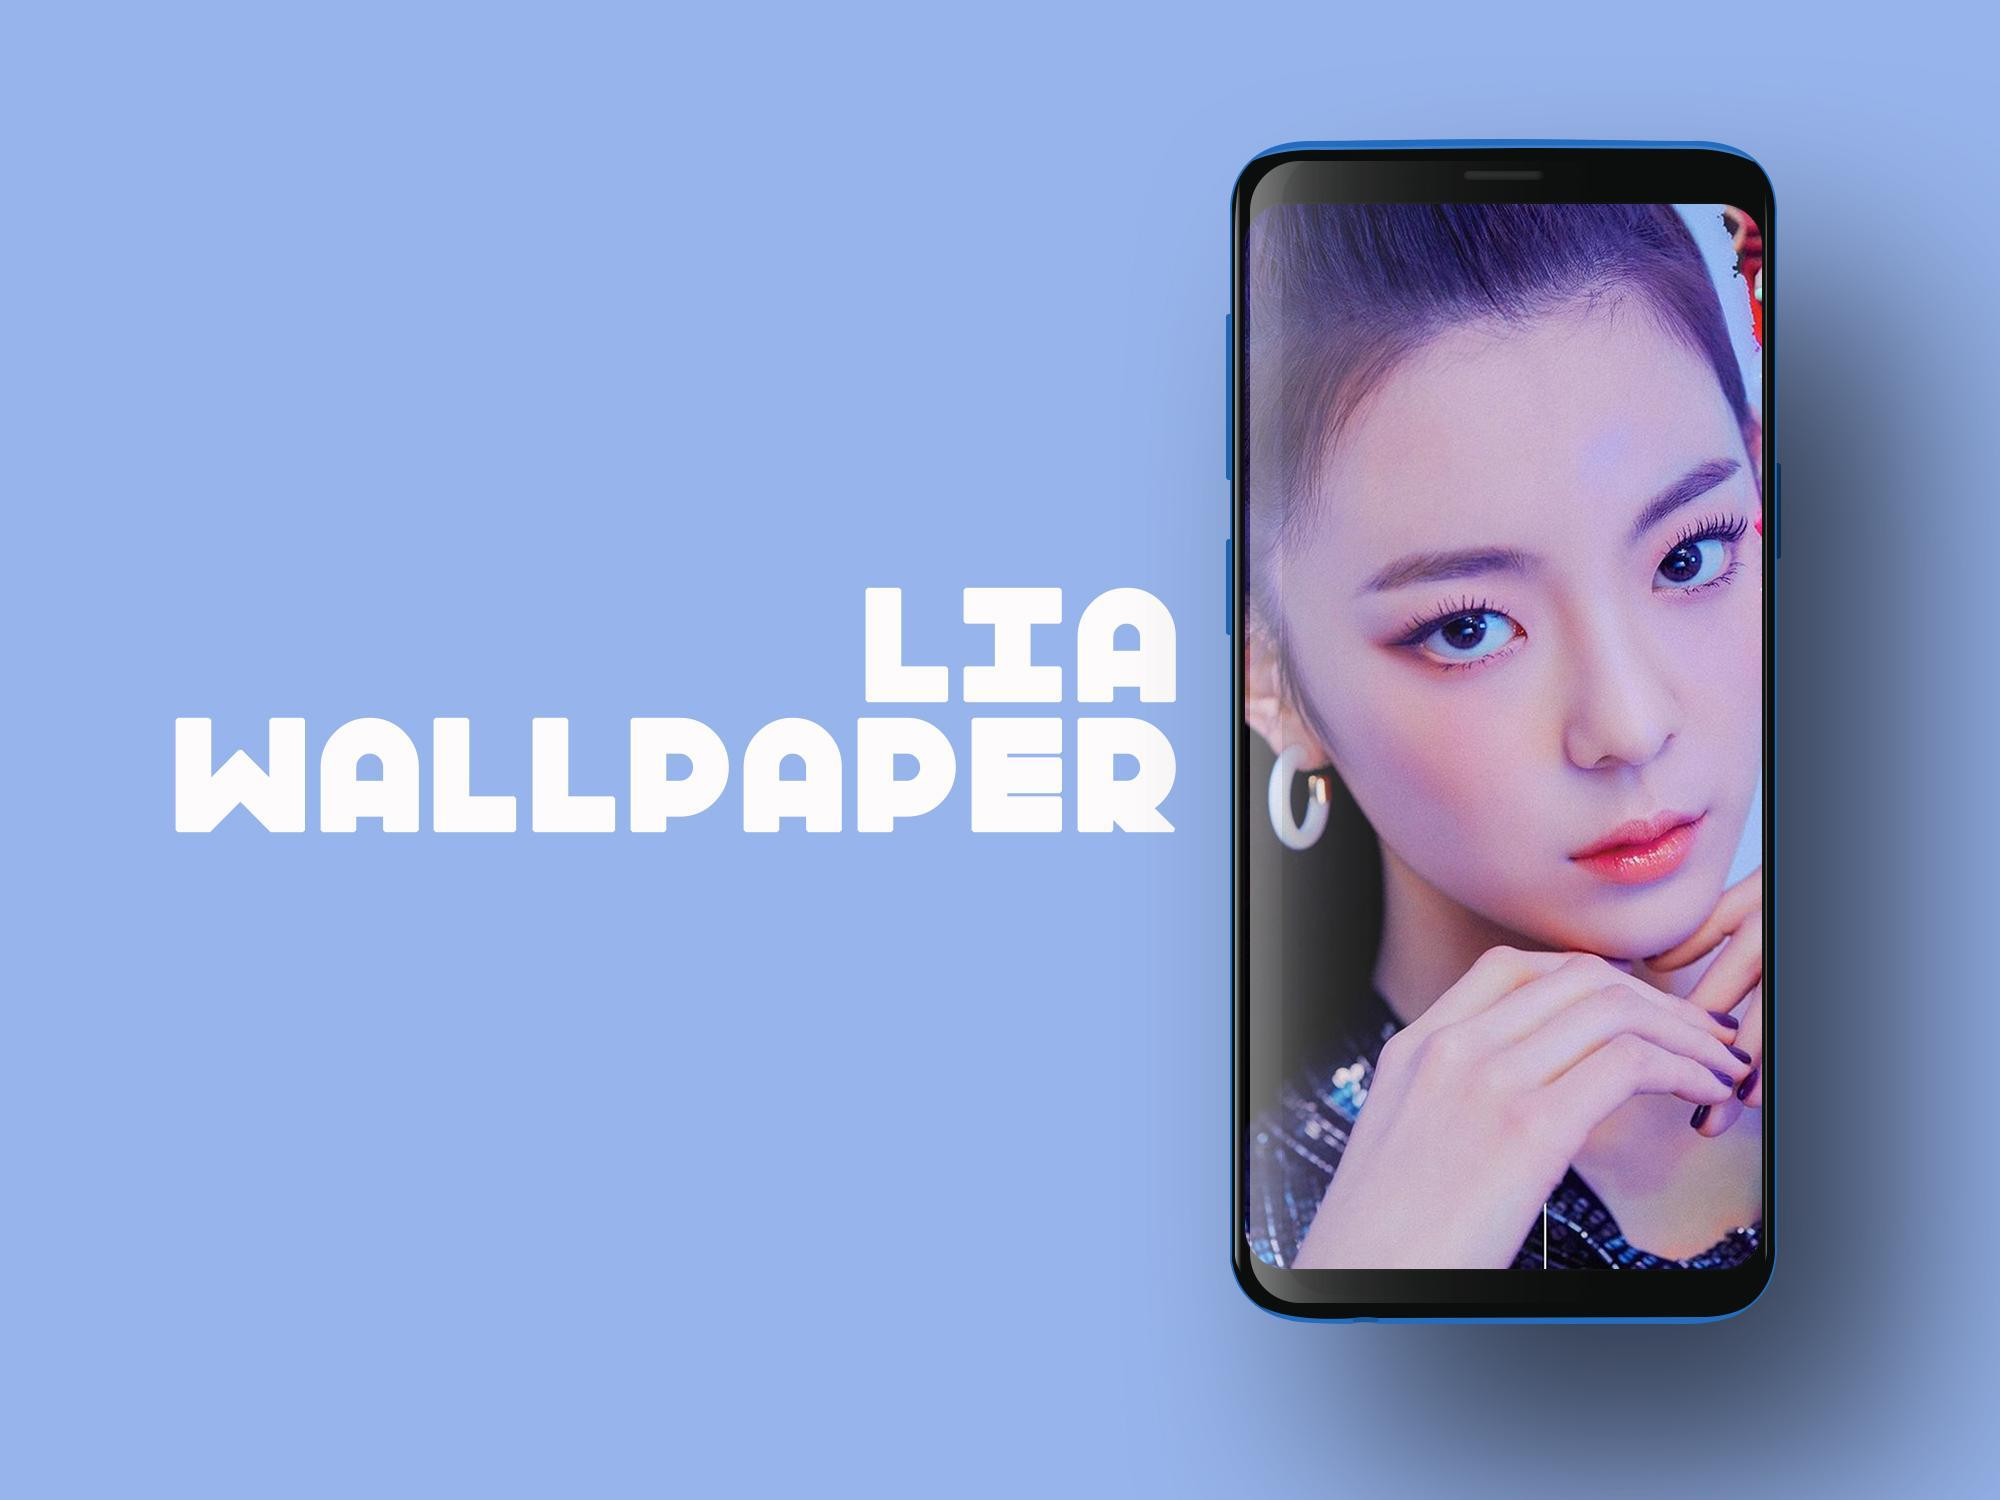 ITZY Lia Wallpapers KPOP Fans HD for Android   APK Download 2000x1500